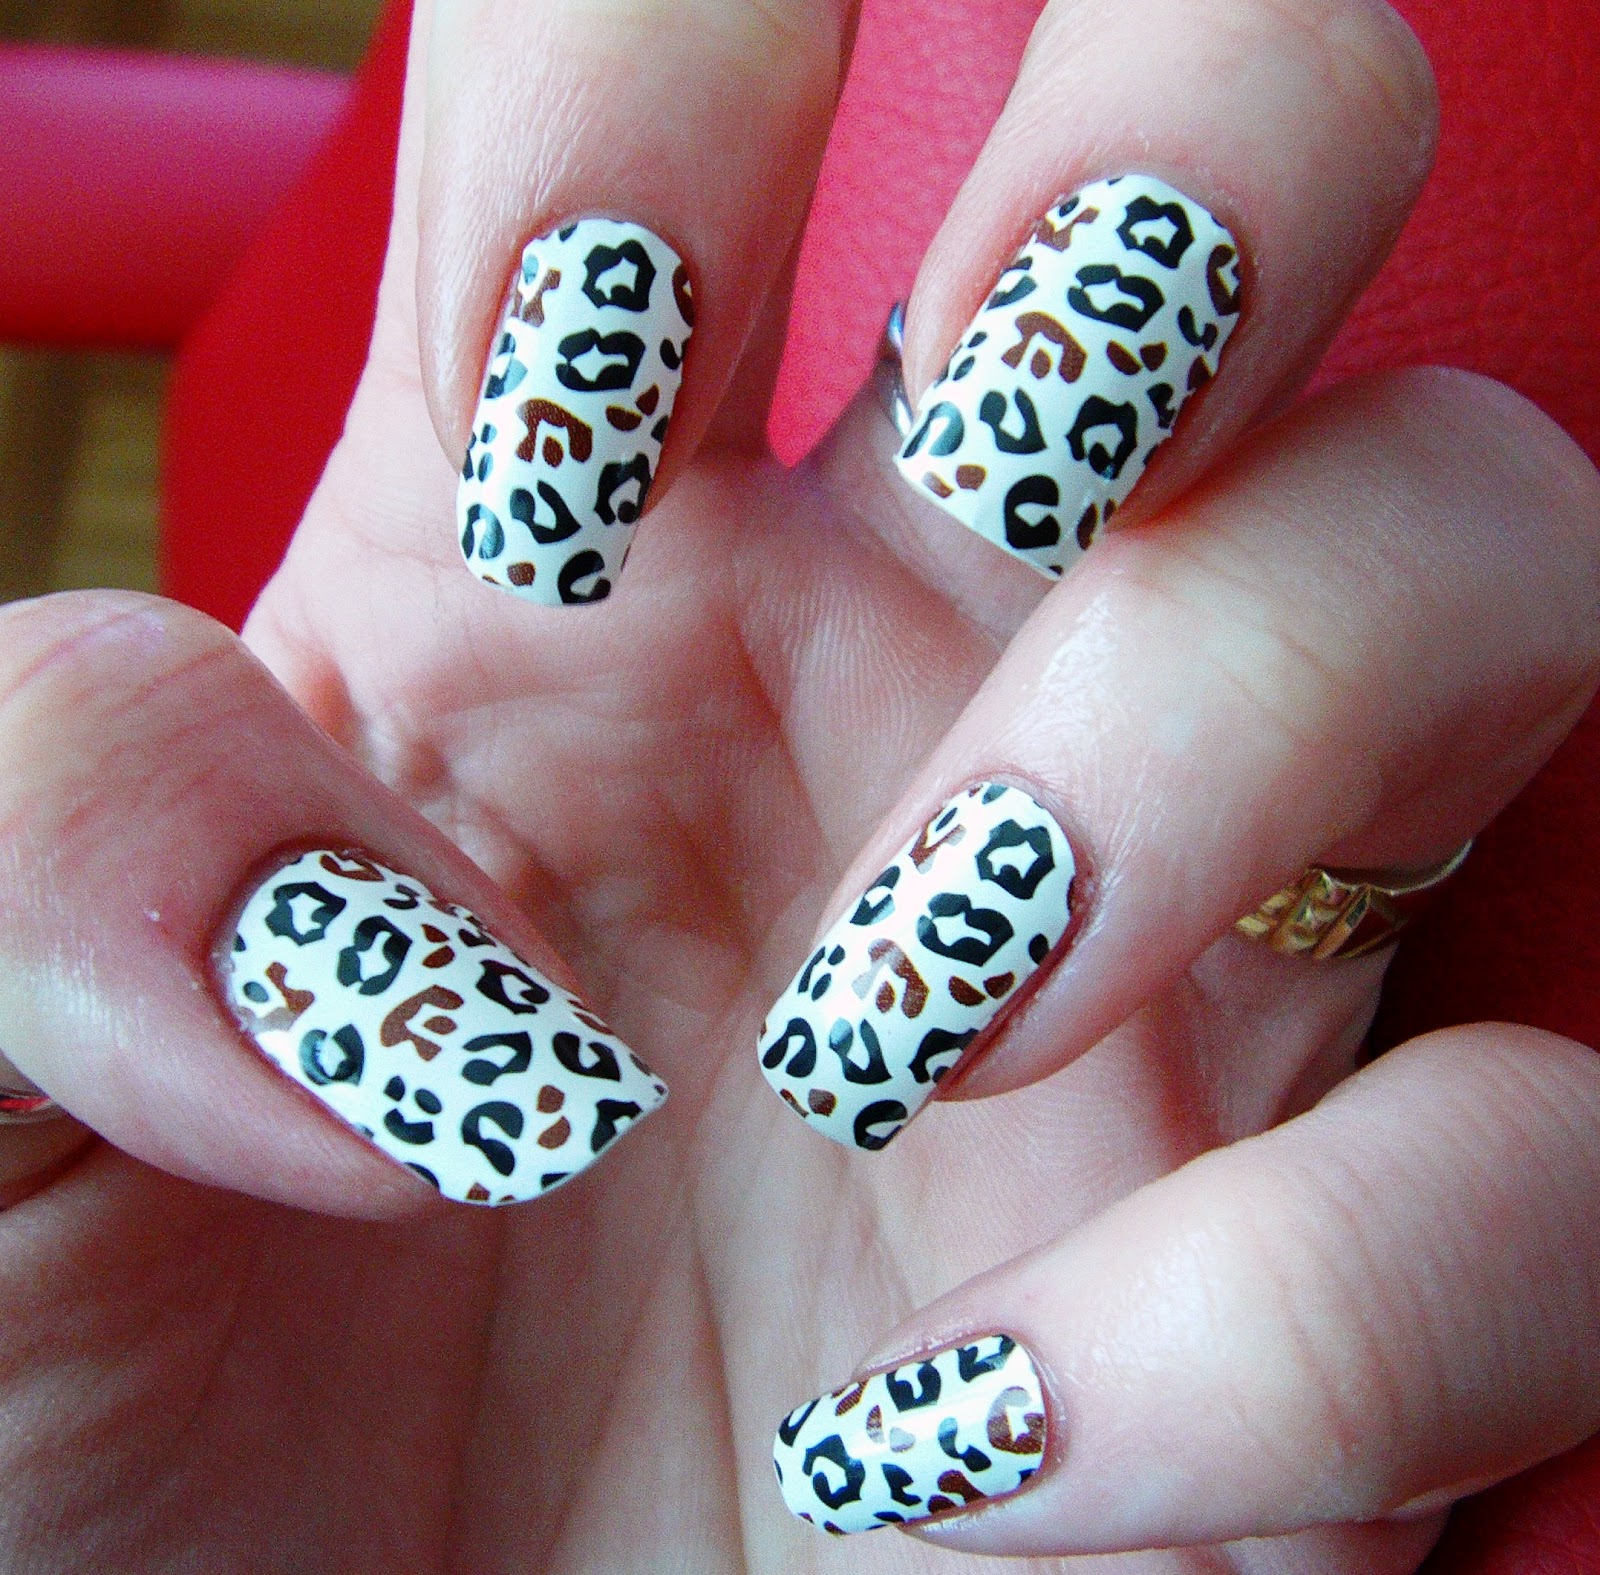 The Excellent Stiletto nail cheetah print designs Photograph